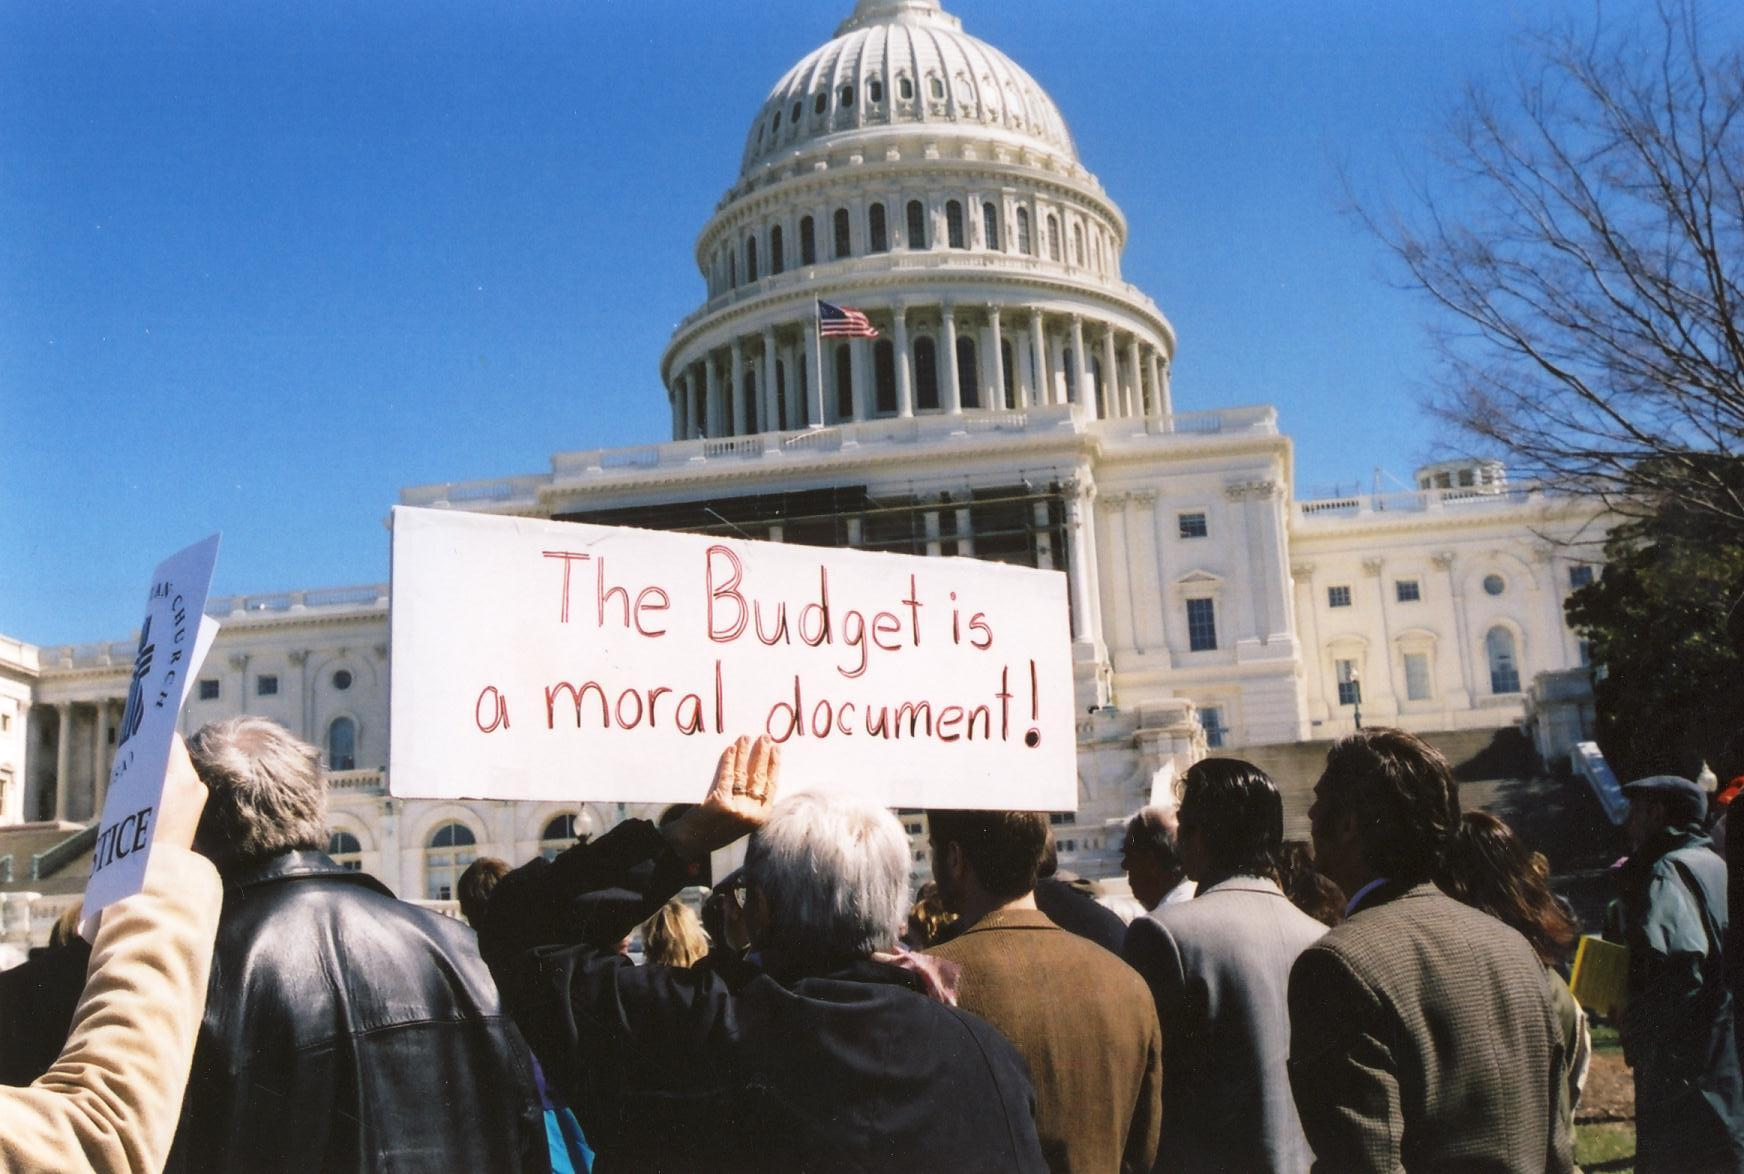 the-budget-is-a-moral-document.jpg